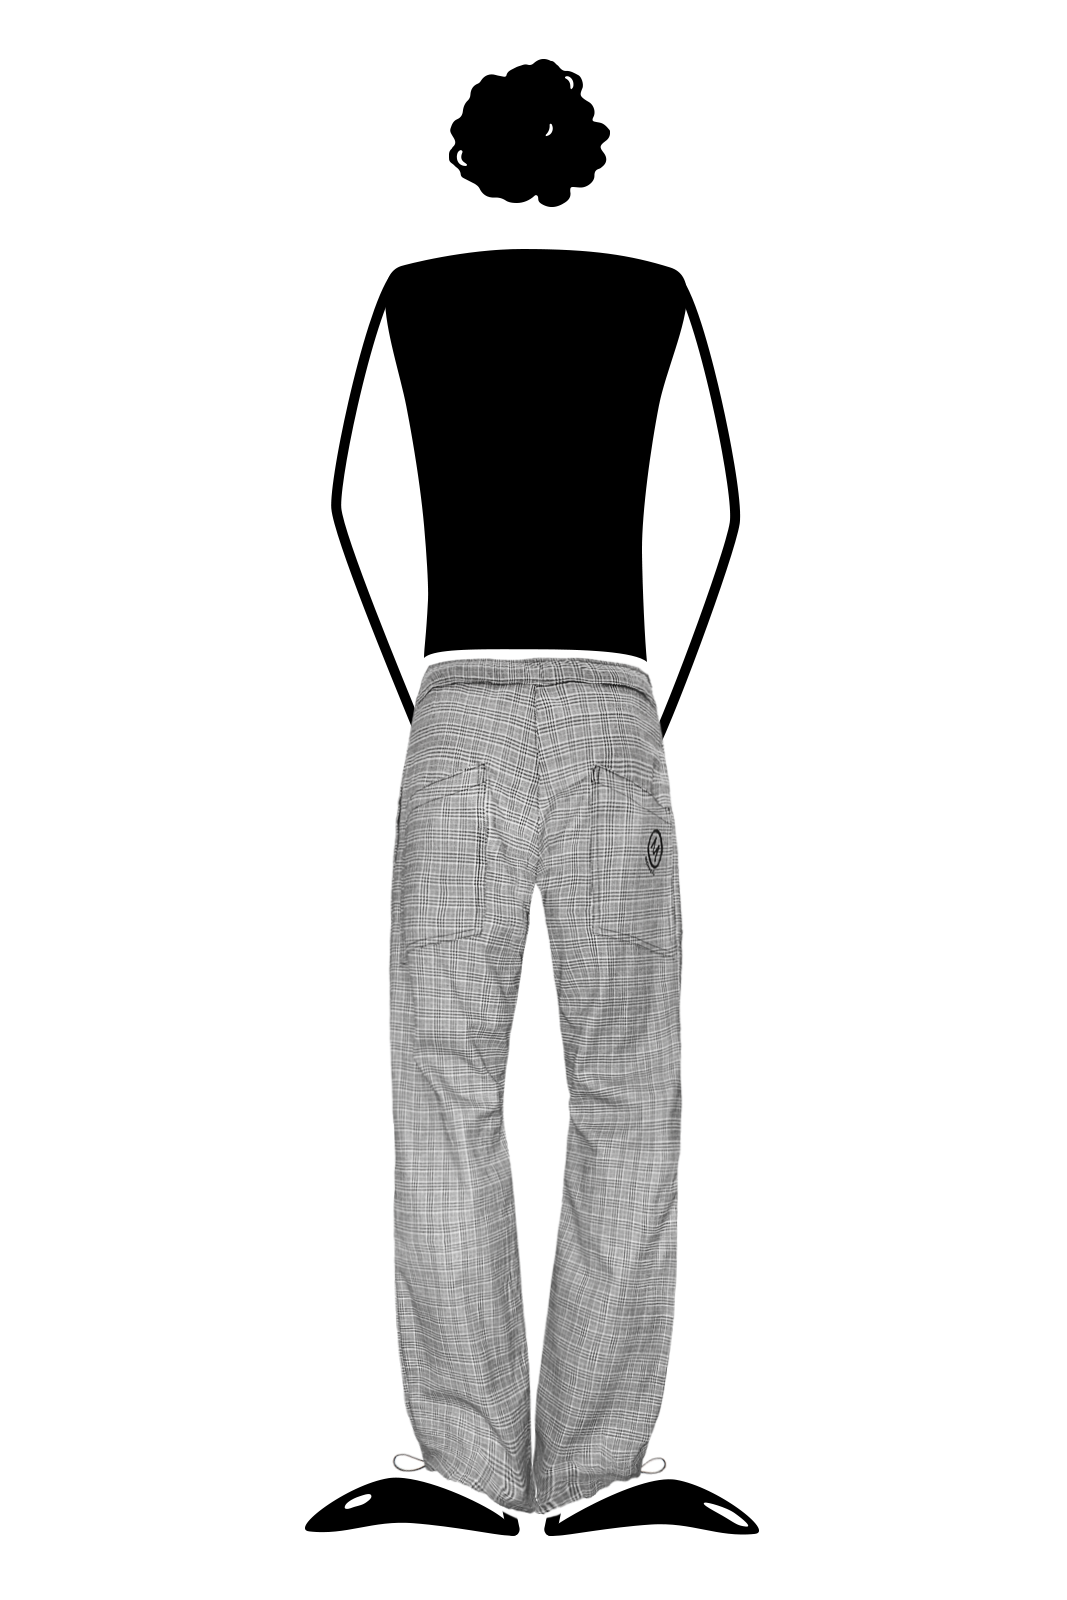 pantalone uomo prince of wales grey per arrampicata, hiking, sport BILLY Monvic